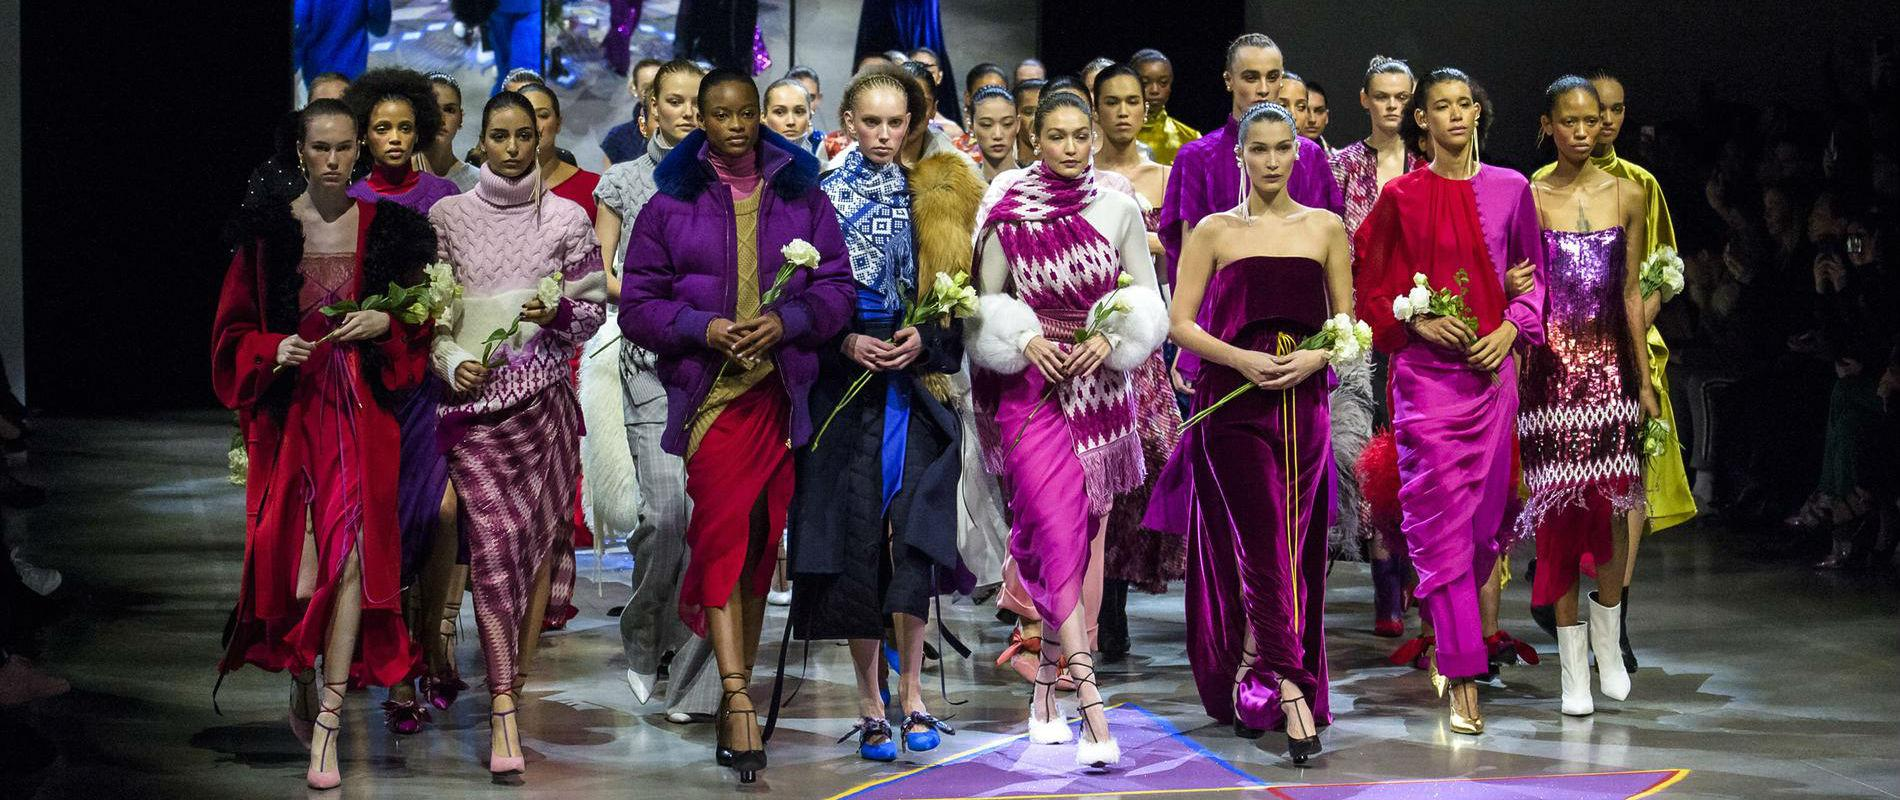 New York Fashion Week - Couleurs tendance automne hiver 2018-2019